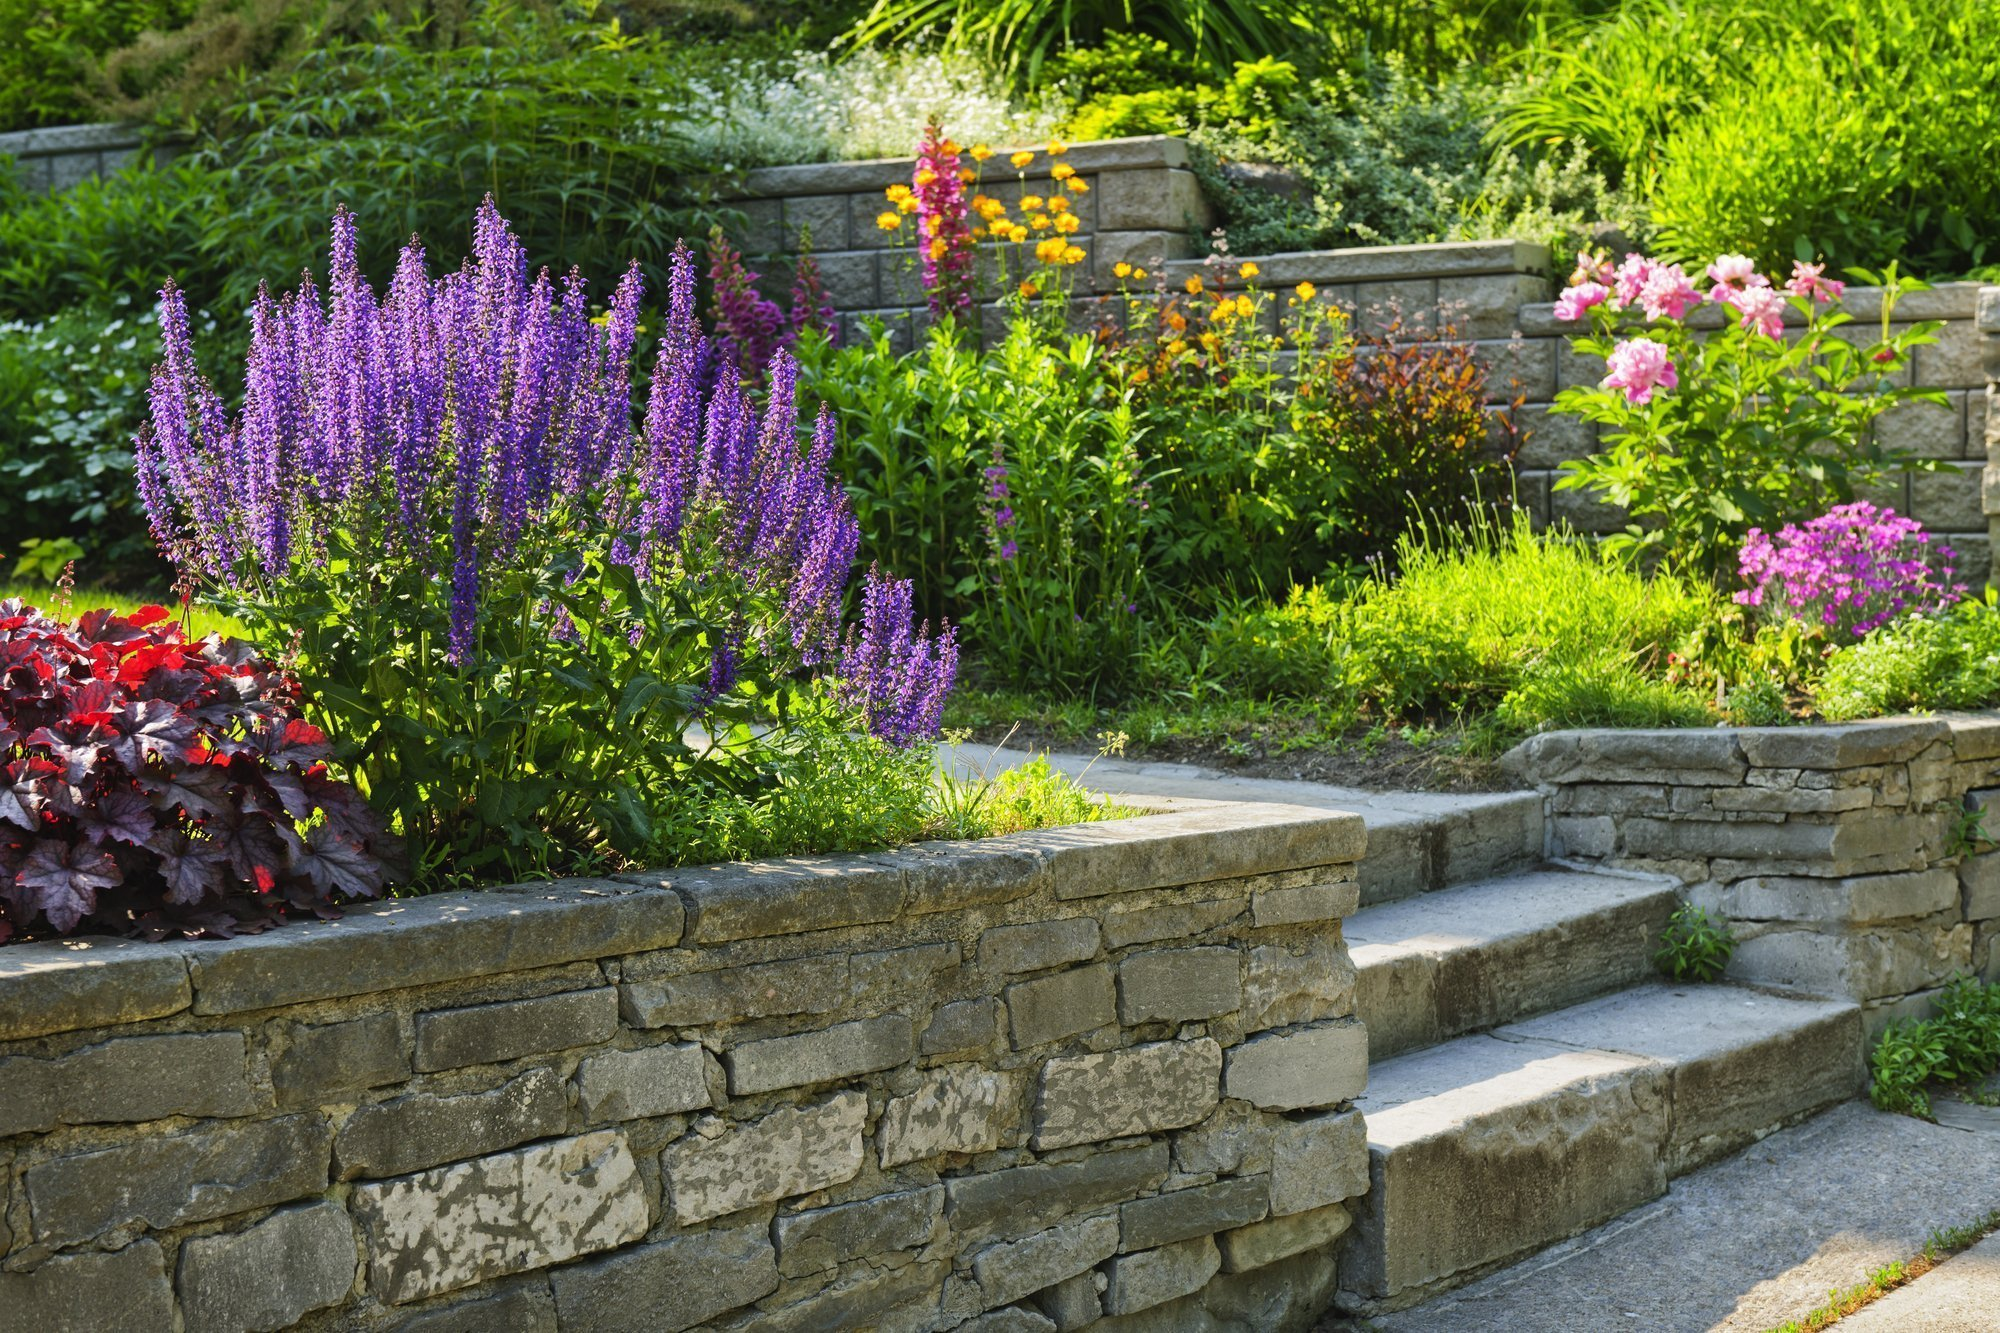 Landscaping Tips to Achieve the Perfect Garden